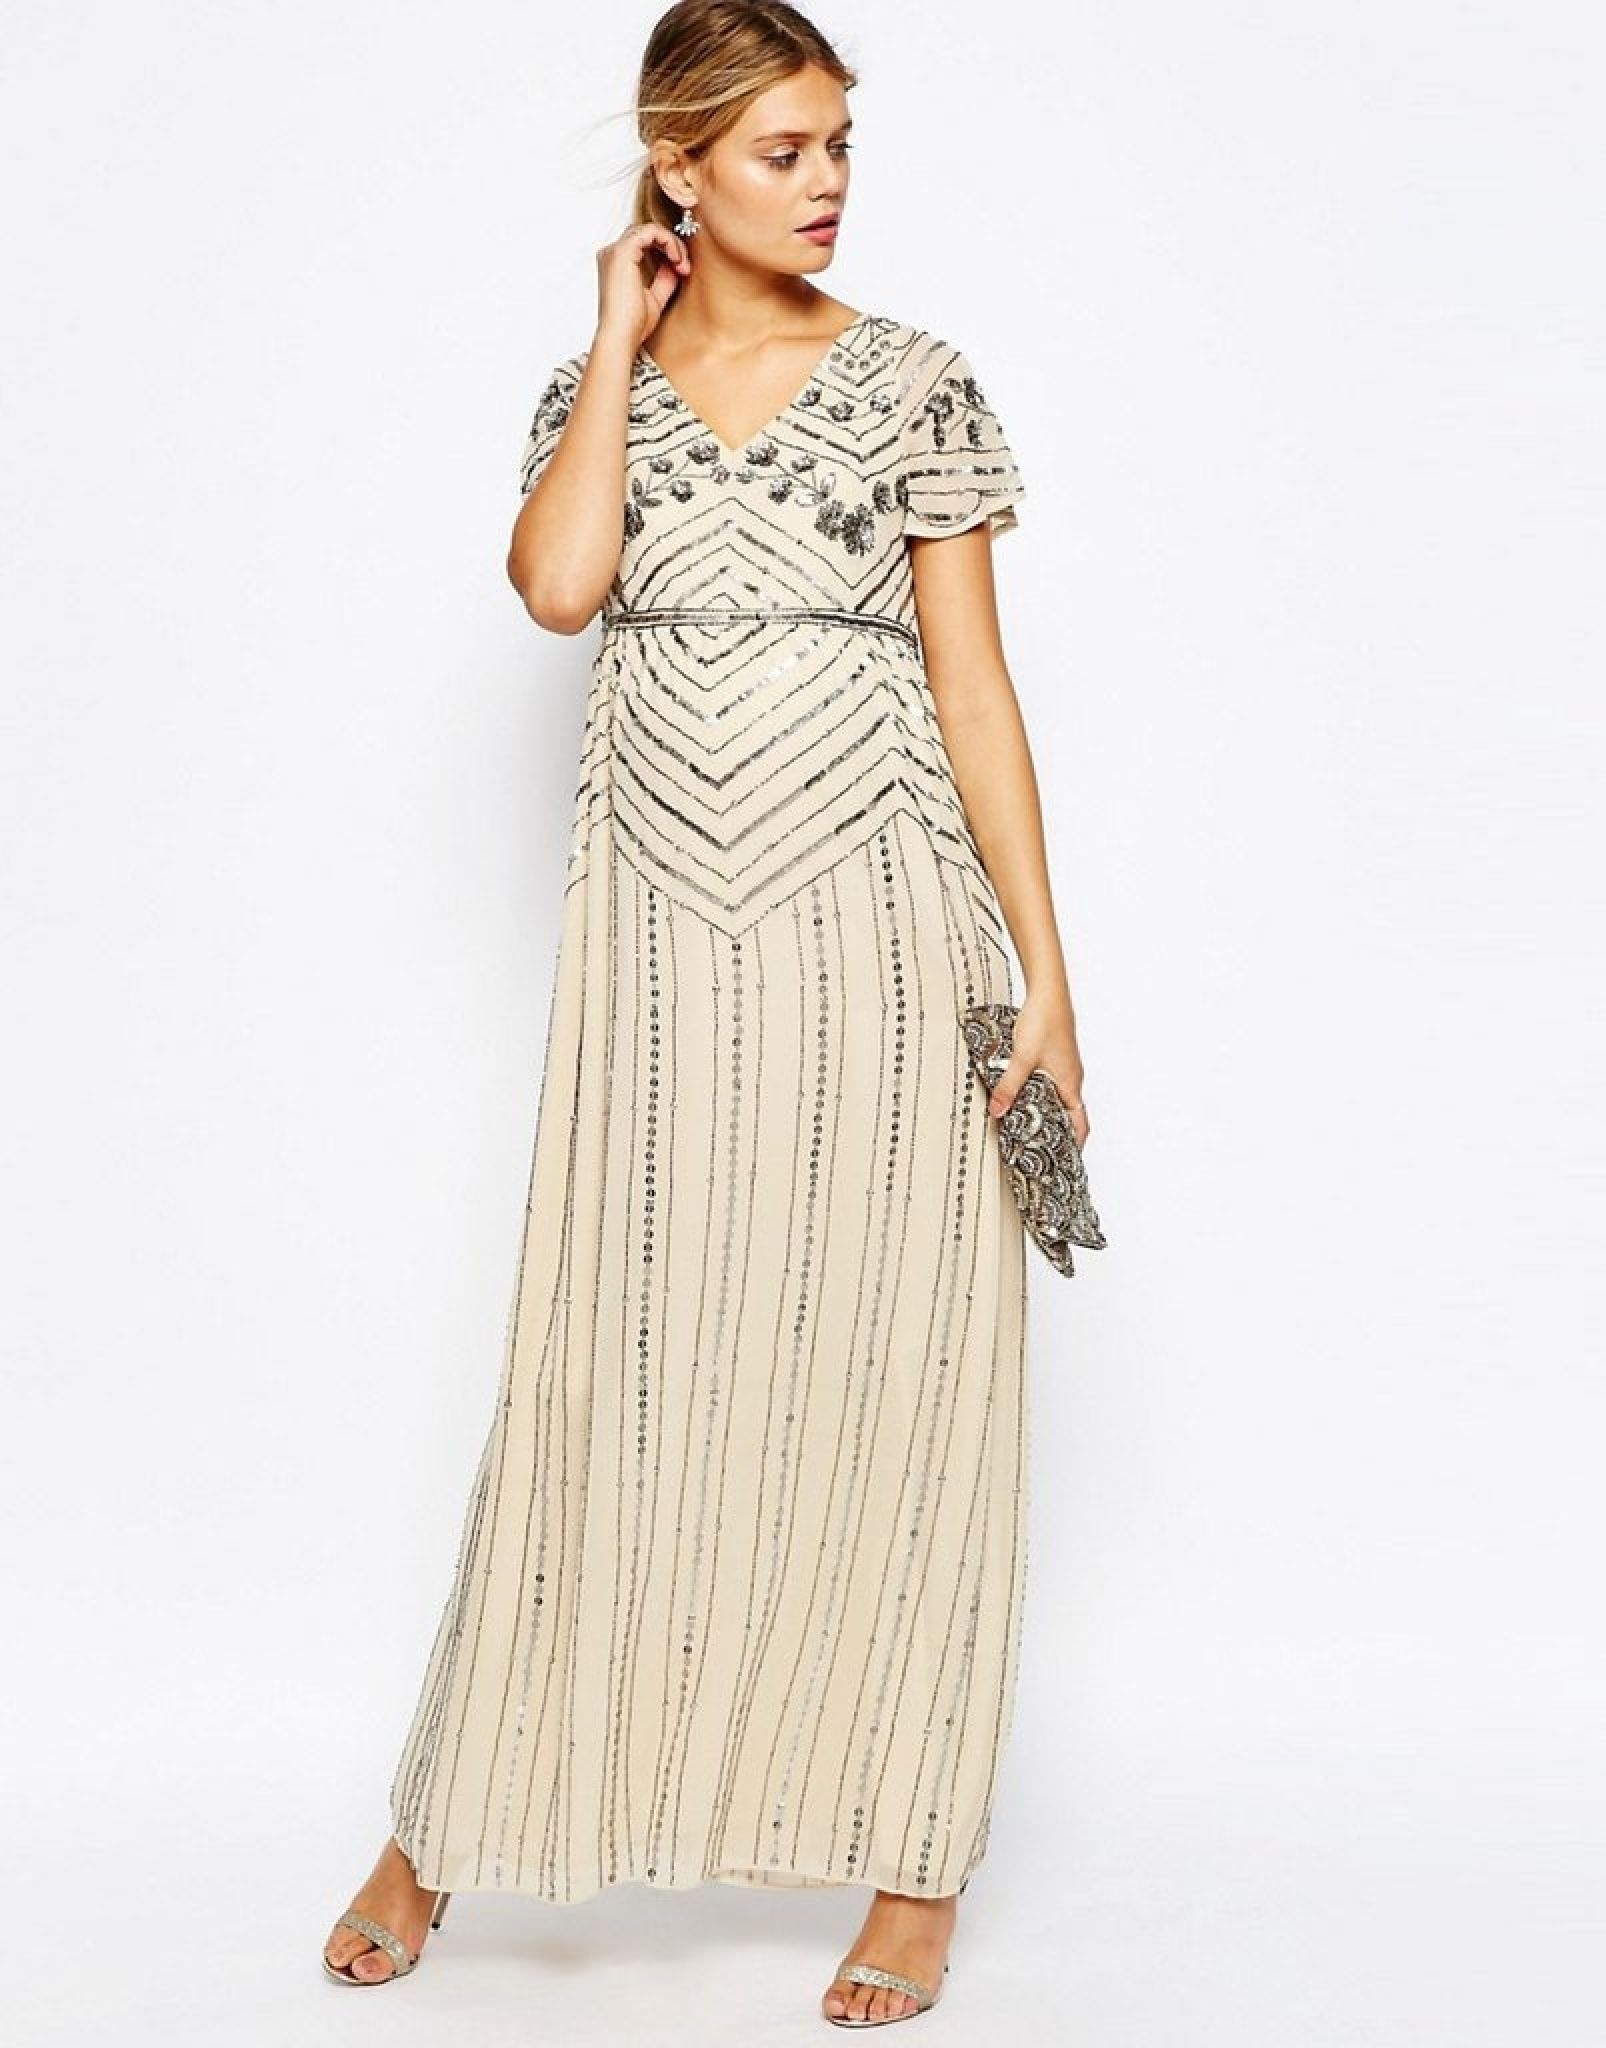 Maternity dresses for wedding guests country dresses for weddings